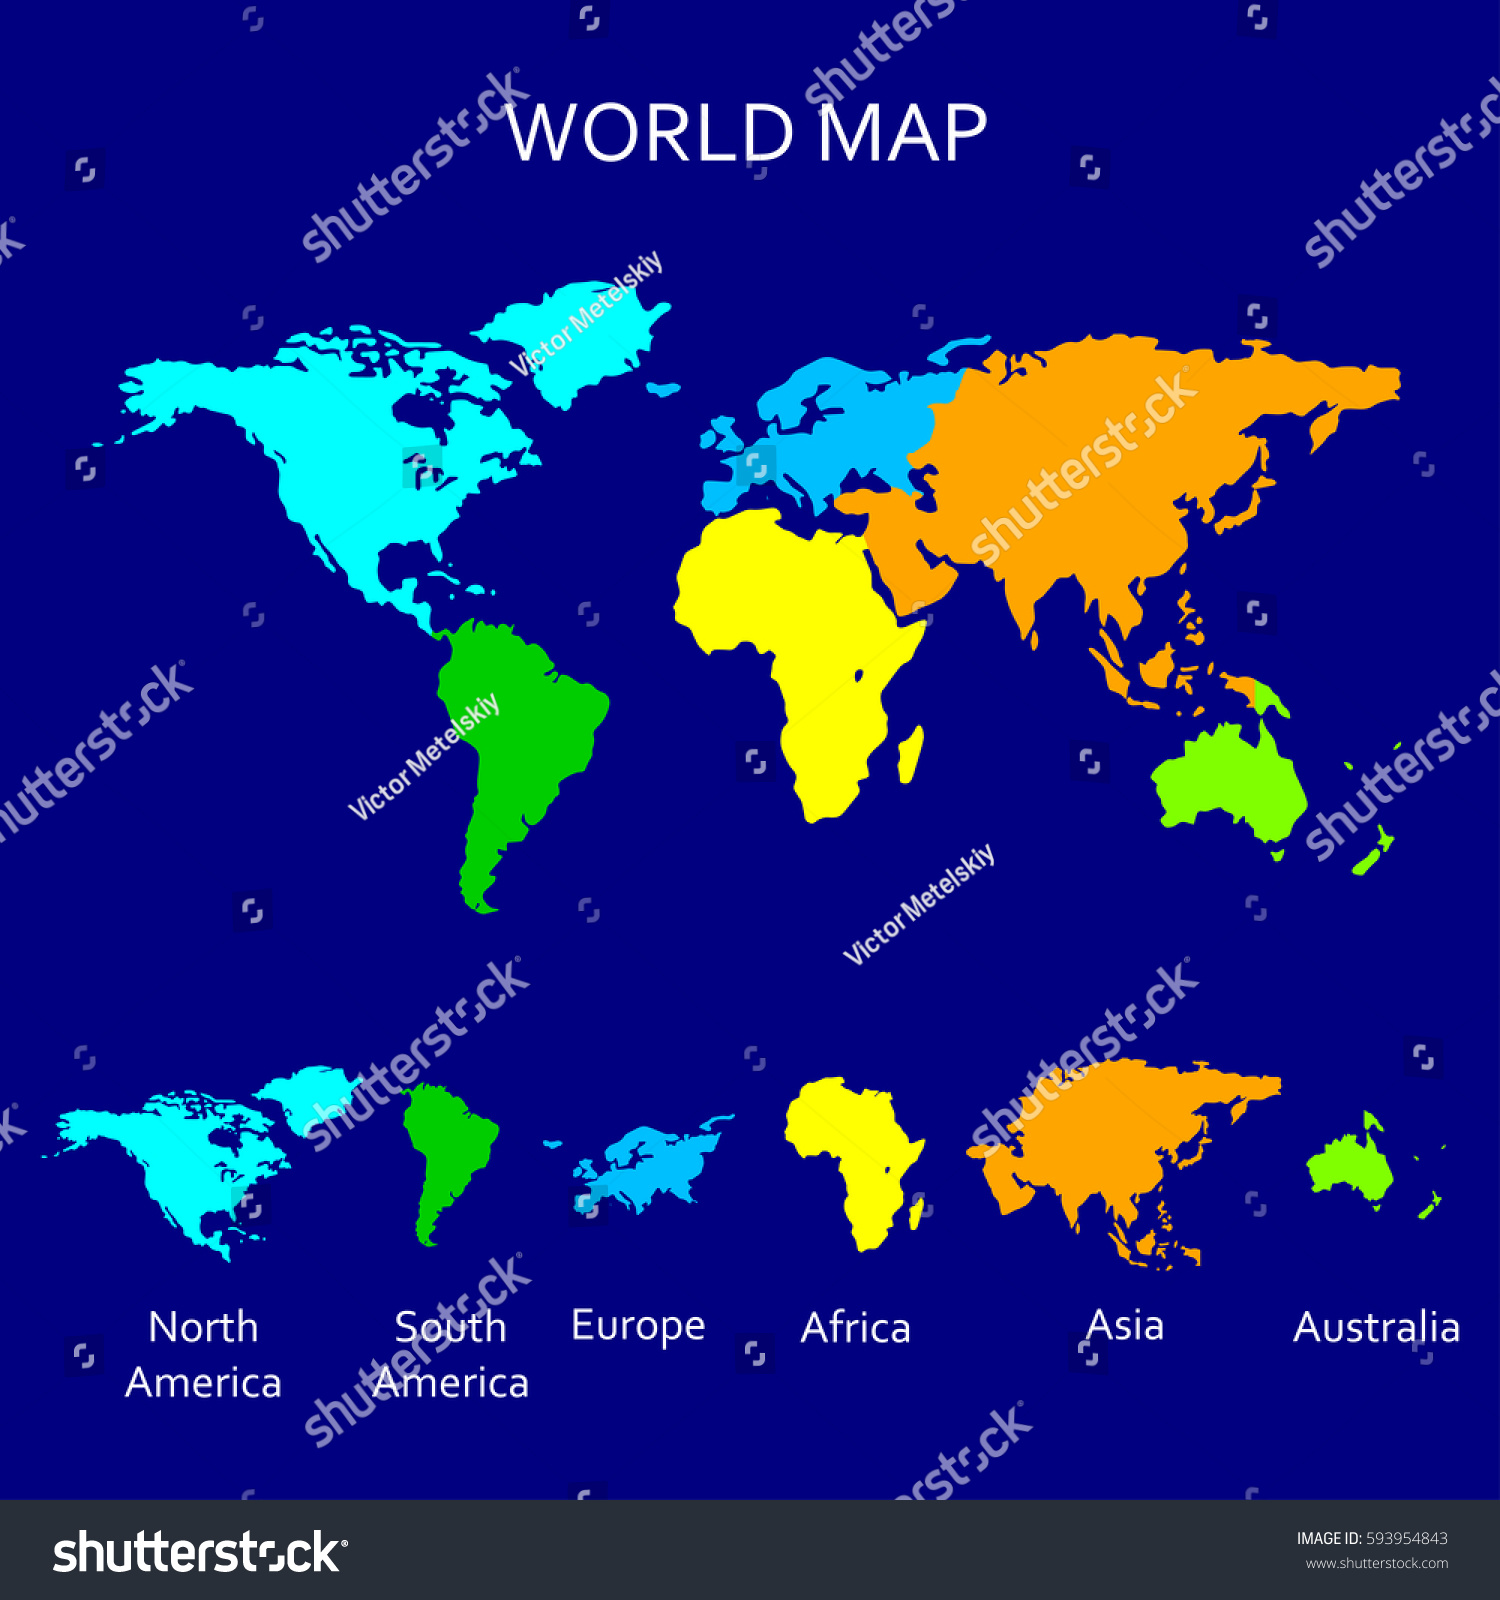 Continent map colorful world map atlas vectores en stock 593954843 continent map colorful world map for atlas design with north america south america gumiabroncs Image collections